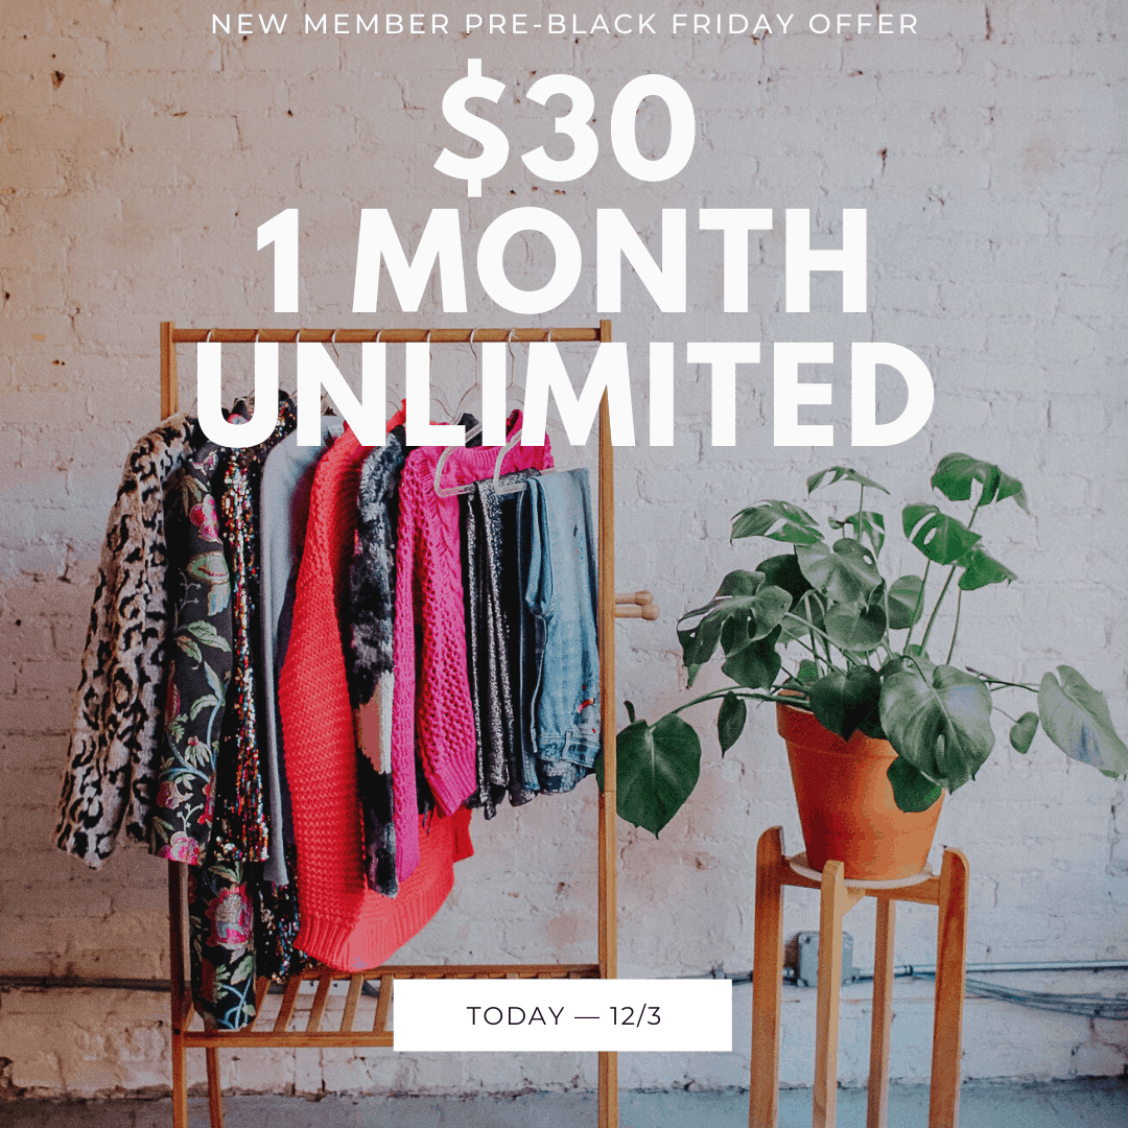 Armoire Black Friday DEAL: Get First Month For Just $30!